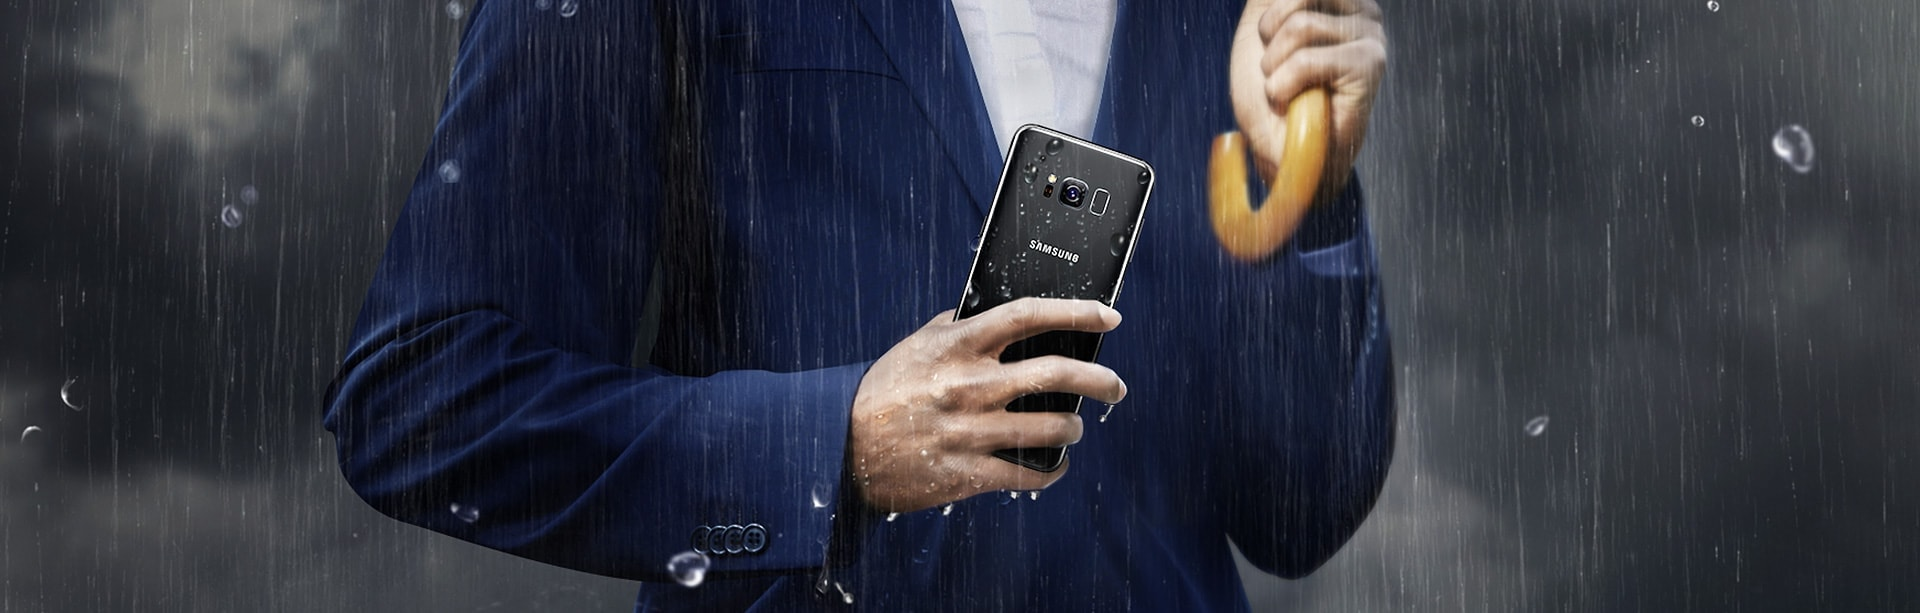 Man in business suit holding the Galaxy S8 in the rain